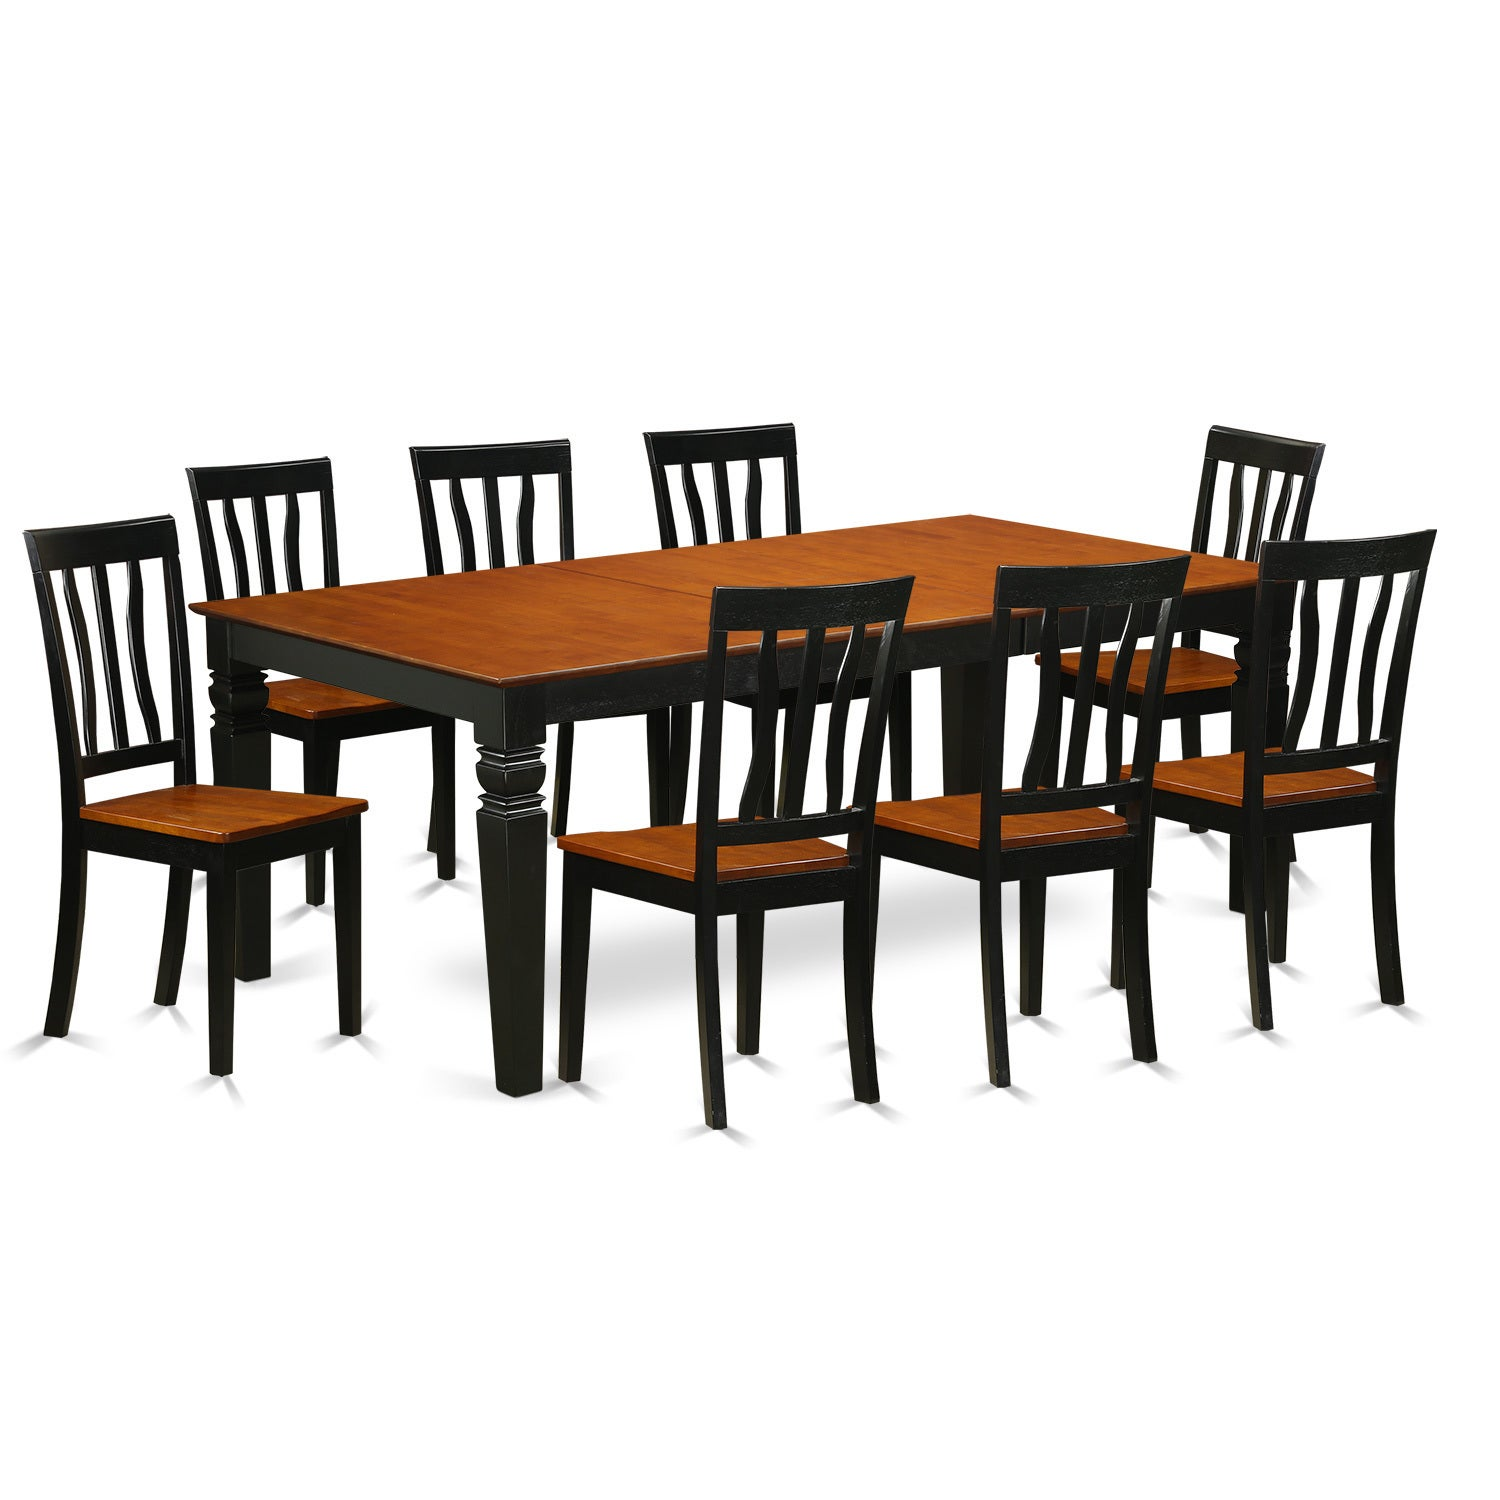 9 Piece Dining Set With 1 Logan Dining Table And 8 Dining Chairs In Black  And Cherry Finish   Free Shipping Today   Overstock   20941043